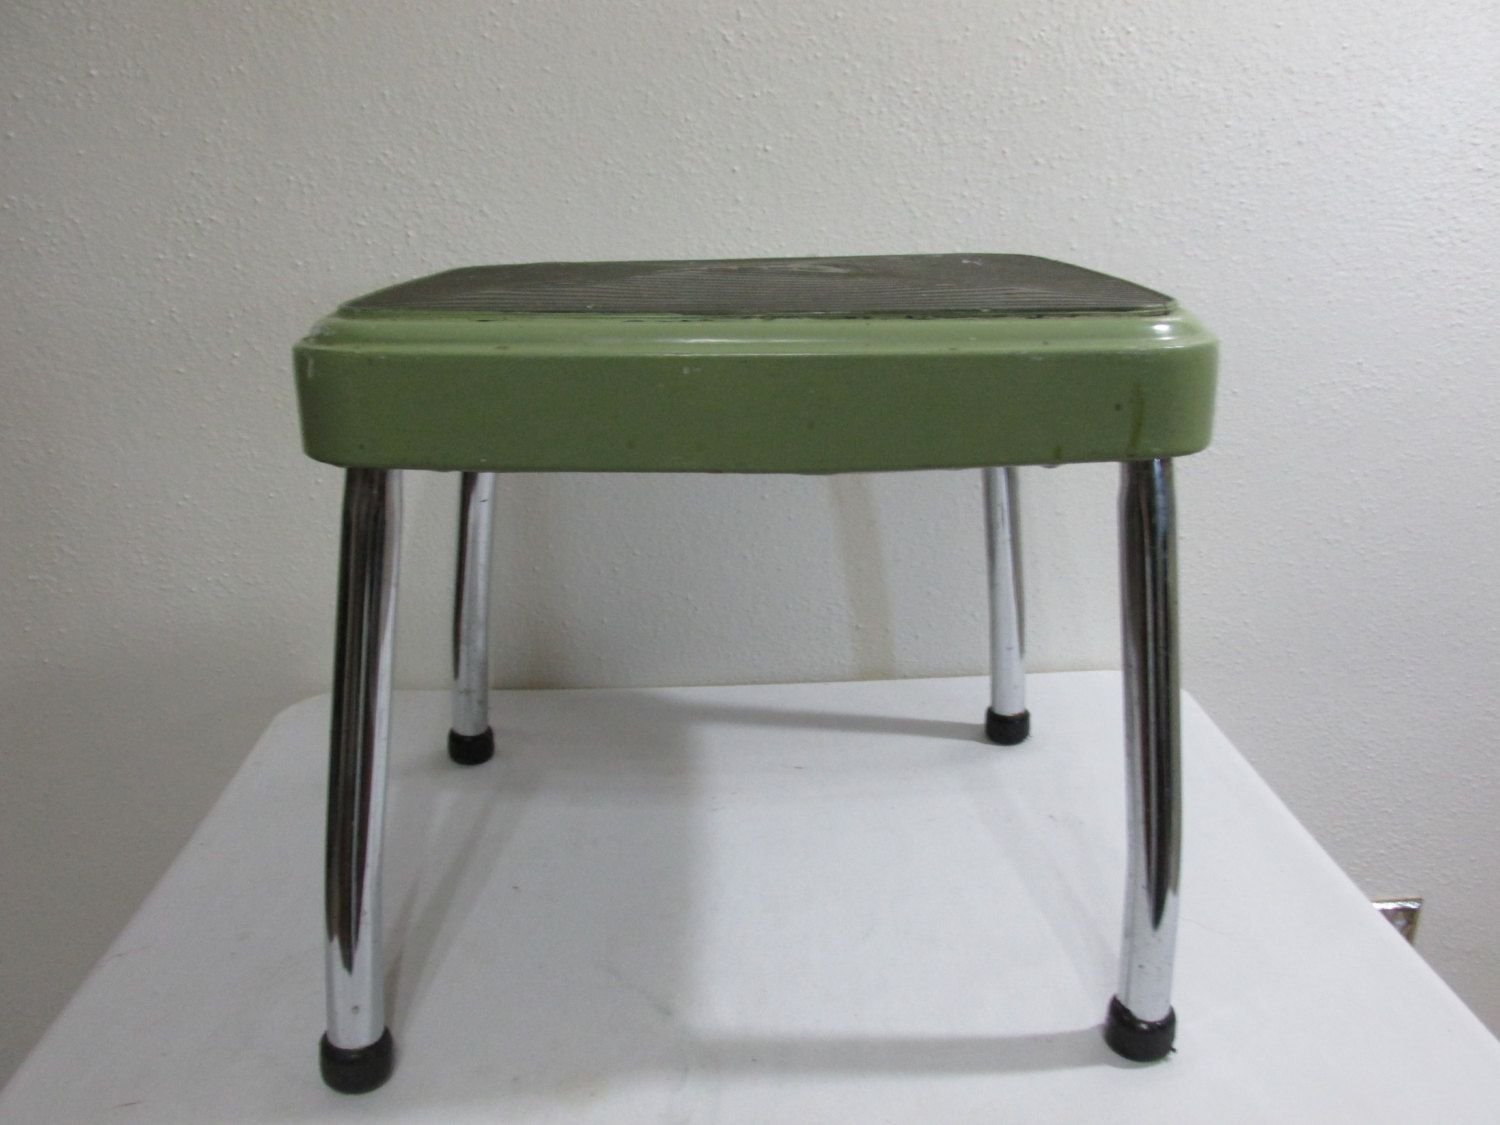 Step Stool Metal Cosco by LuRuUniques on Etsy